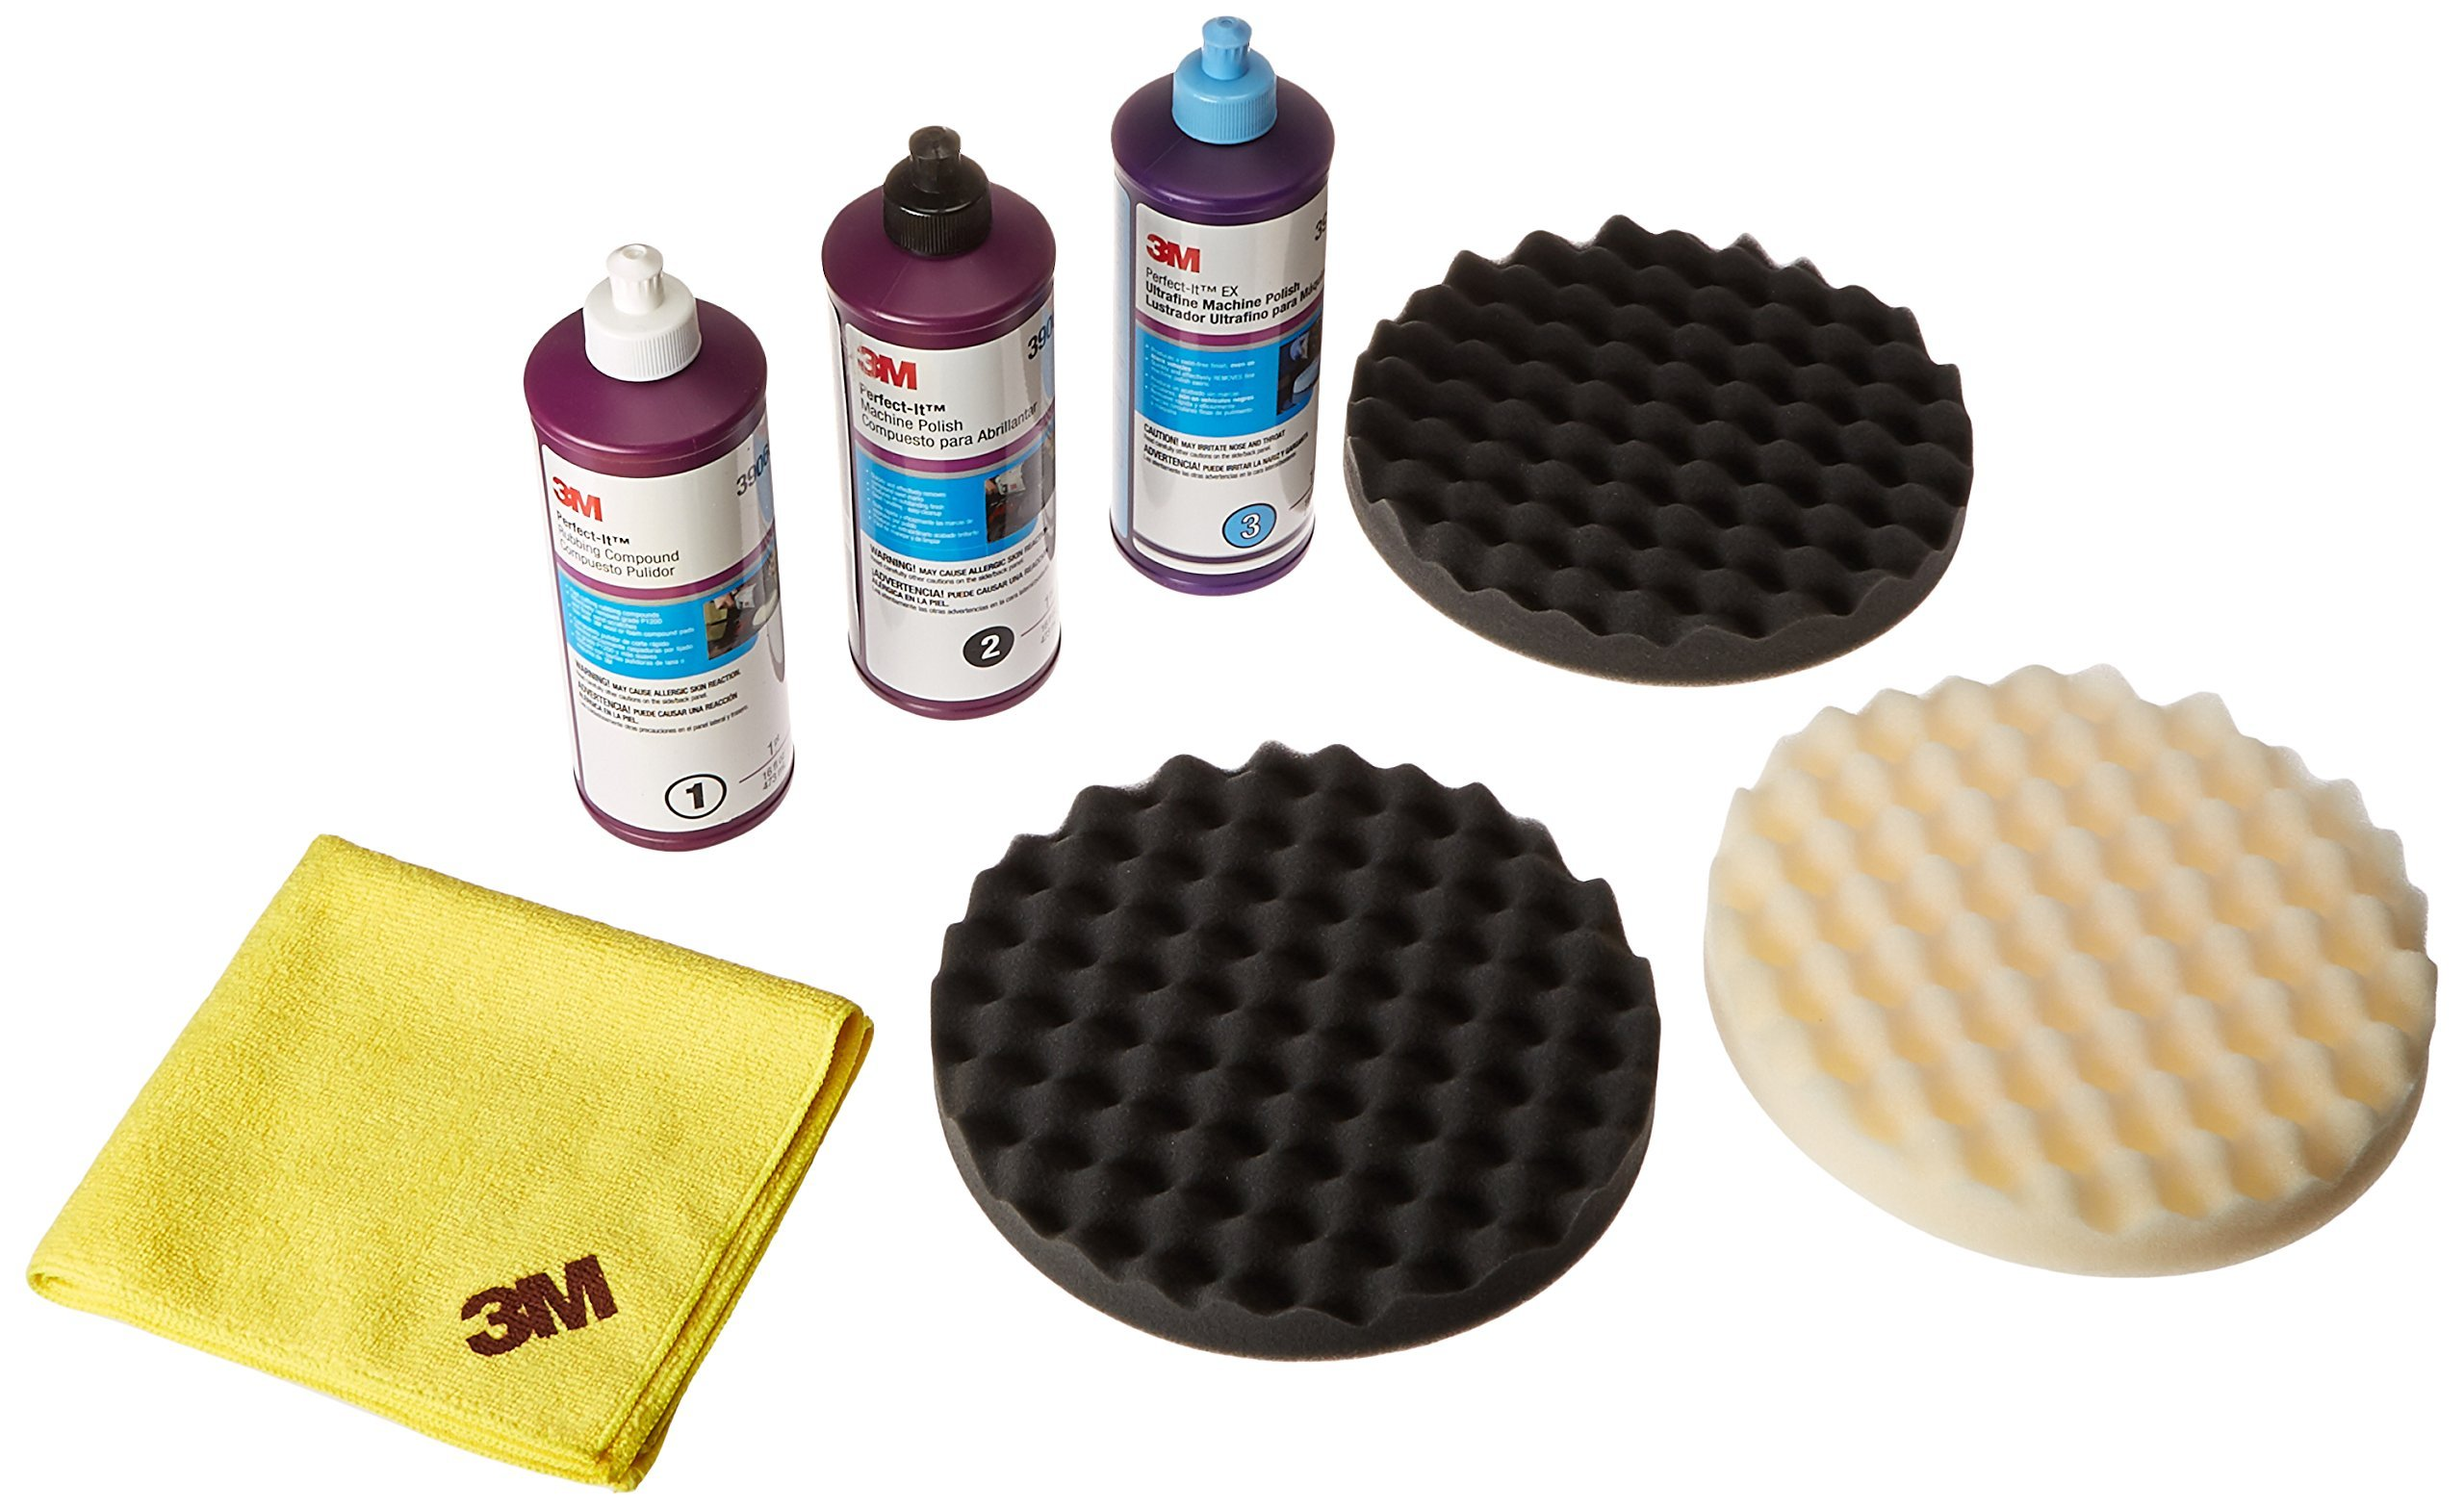 3M Perfect it BUFFING & POLISHING KIT Pad Compound Foam 39062 39061 39060 5723 5725 5751 by 3M